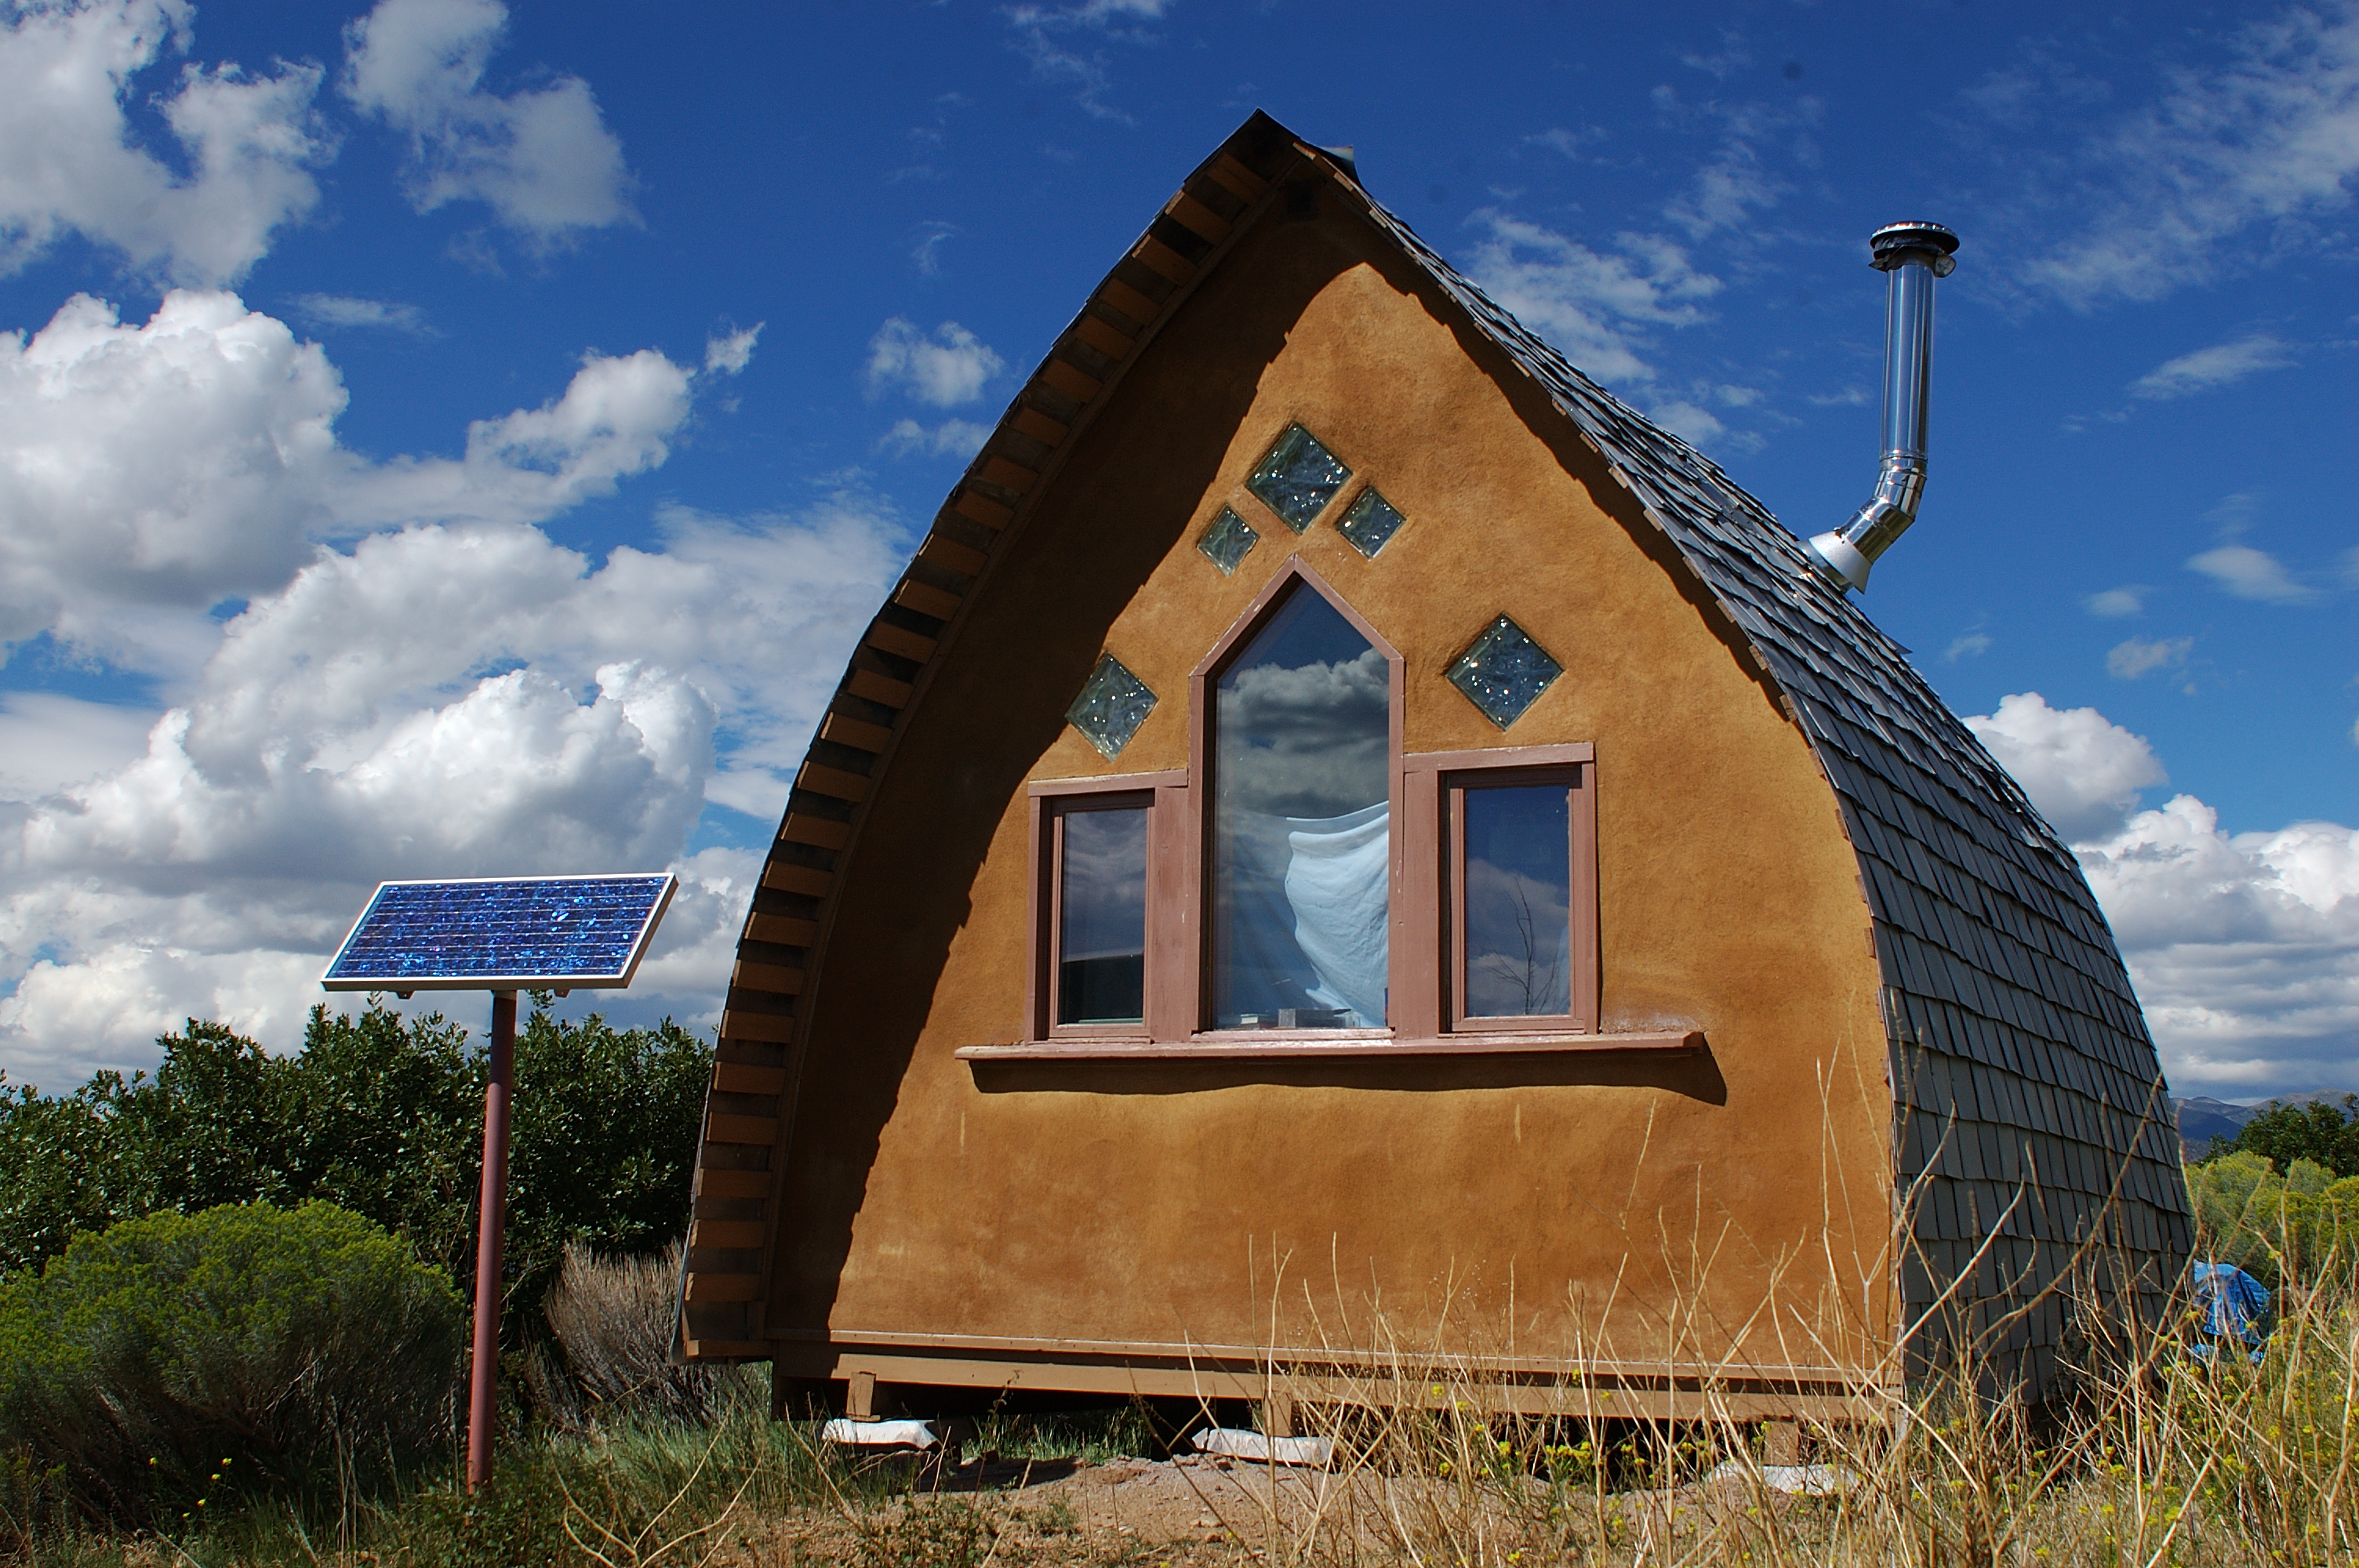 Fine How Can We Build More Affordable Eco Housing Geography Download Free Architecture Designs Scobabritishbridgeorg